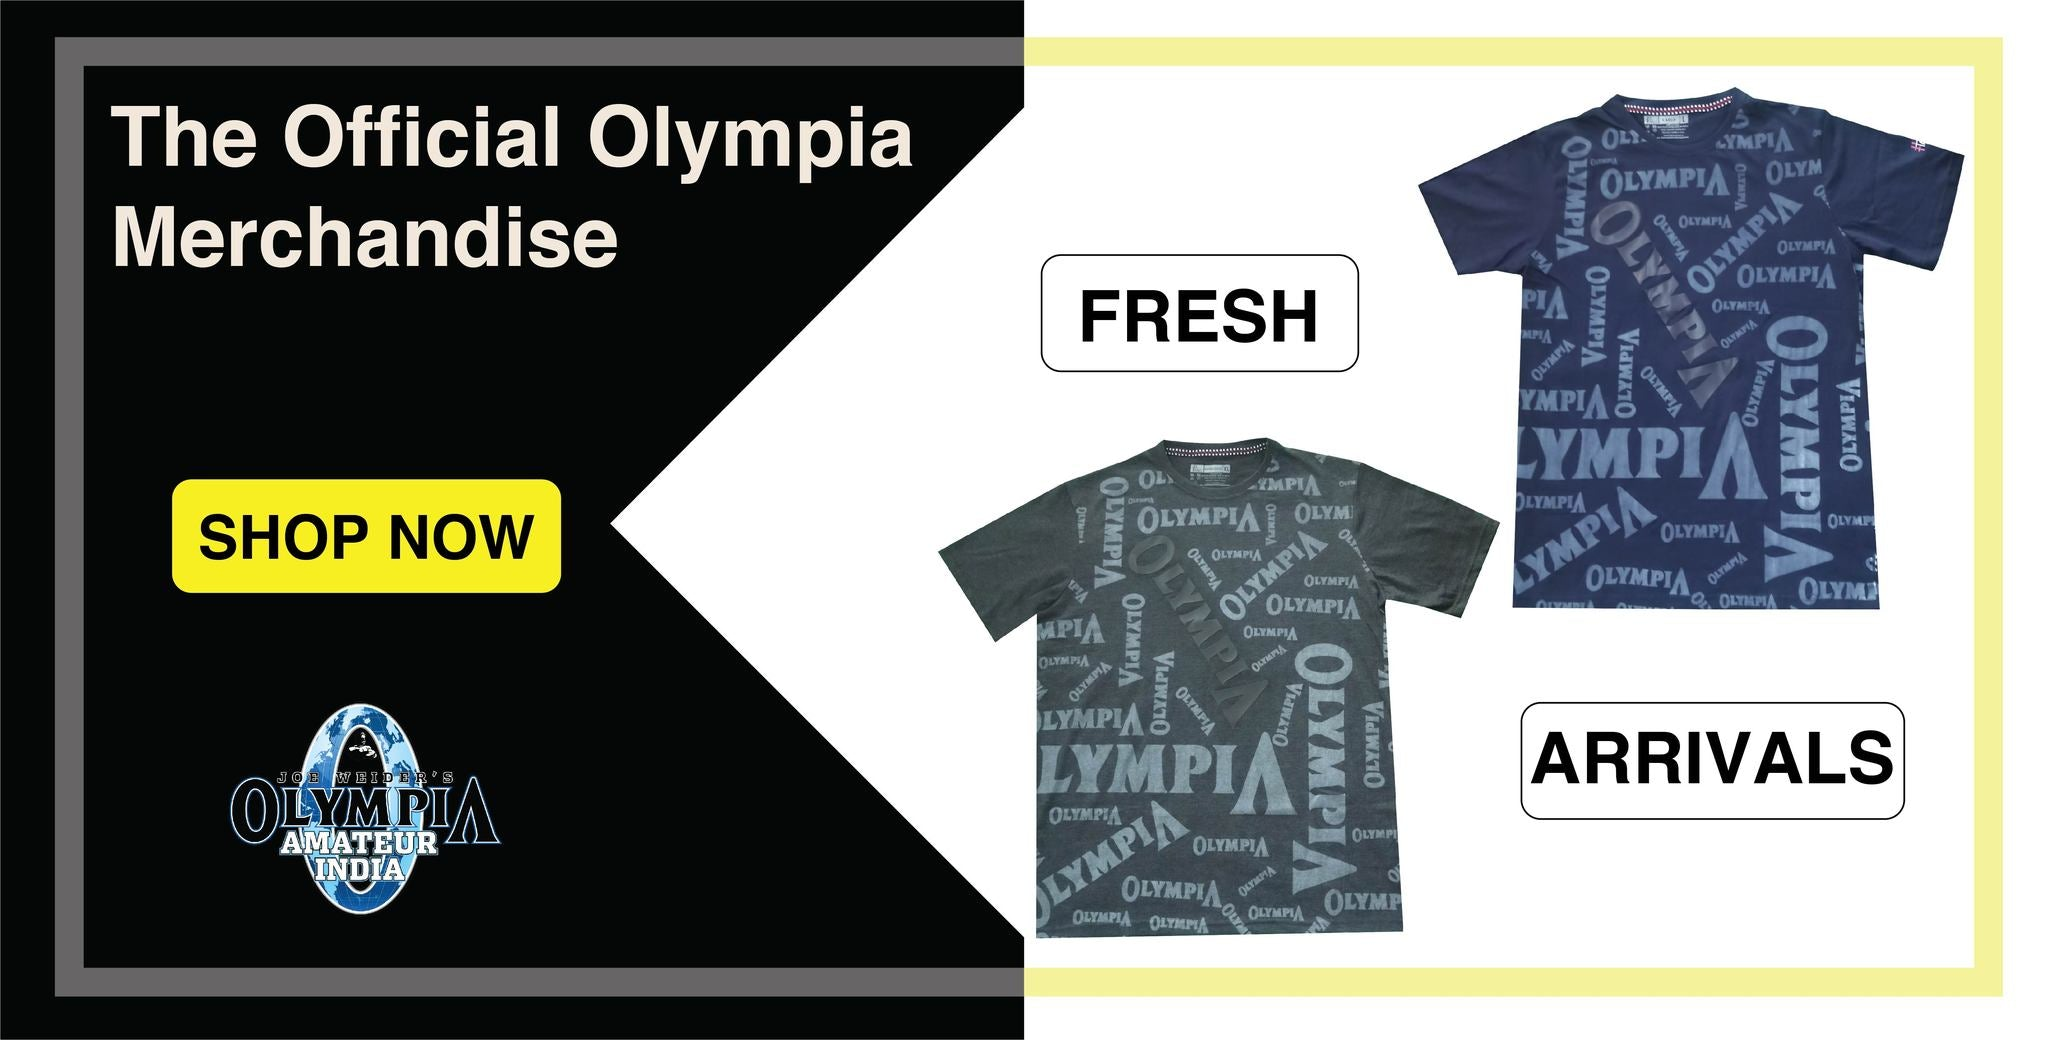 Official Olympia Merchandise